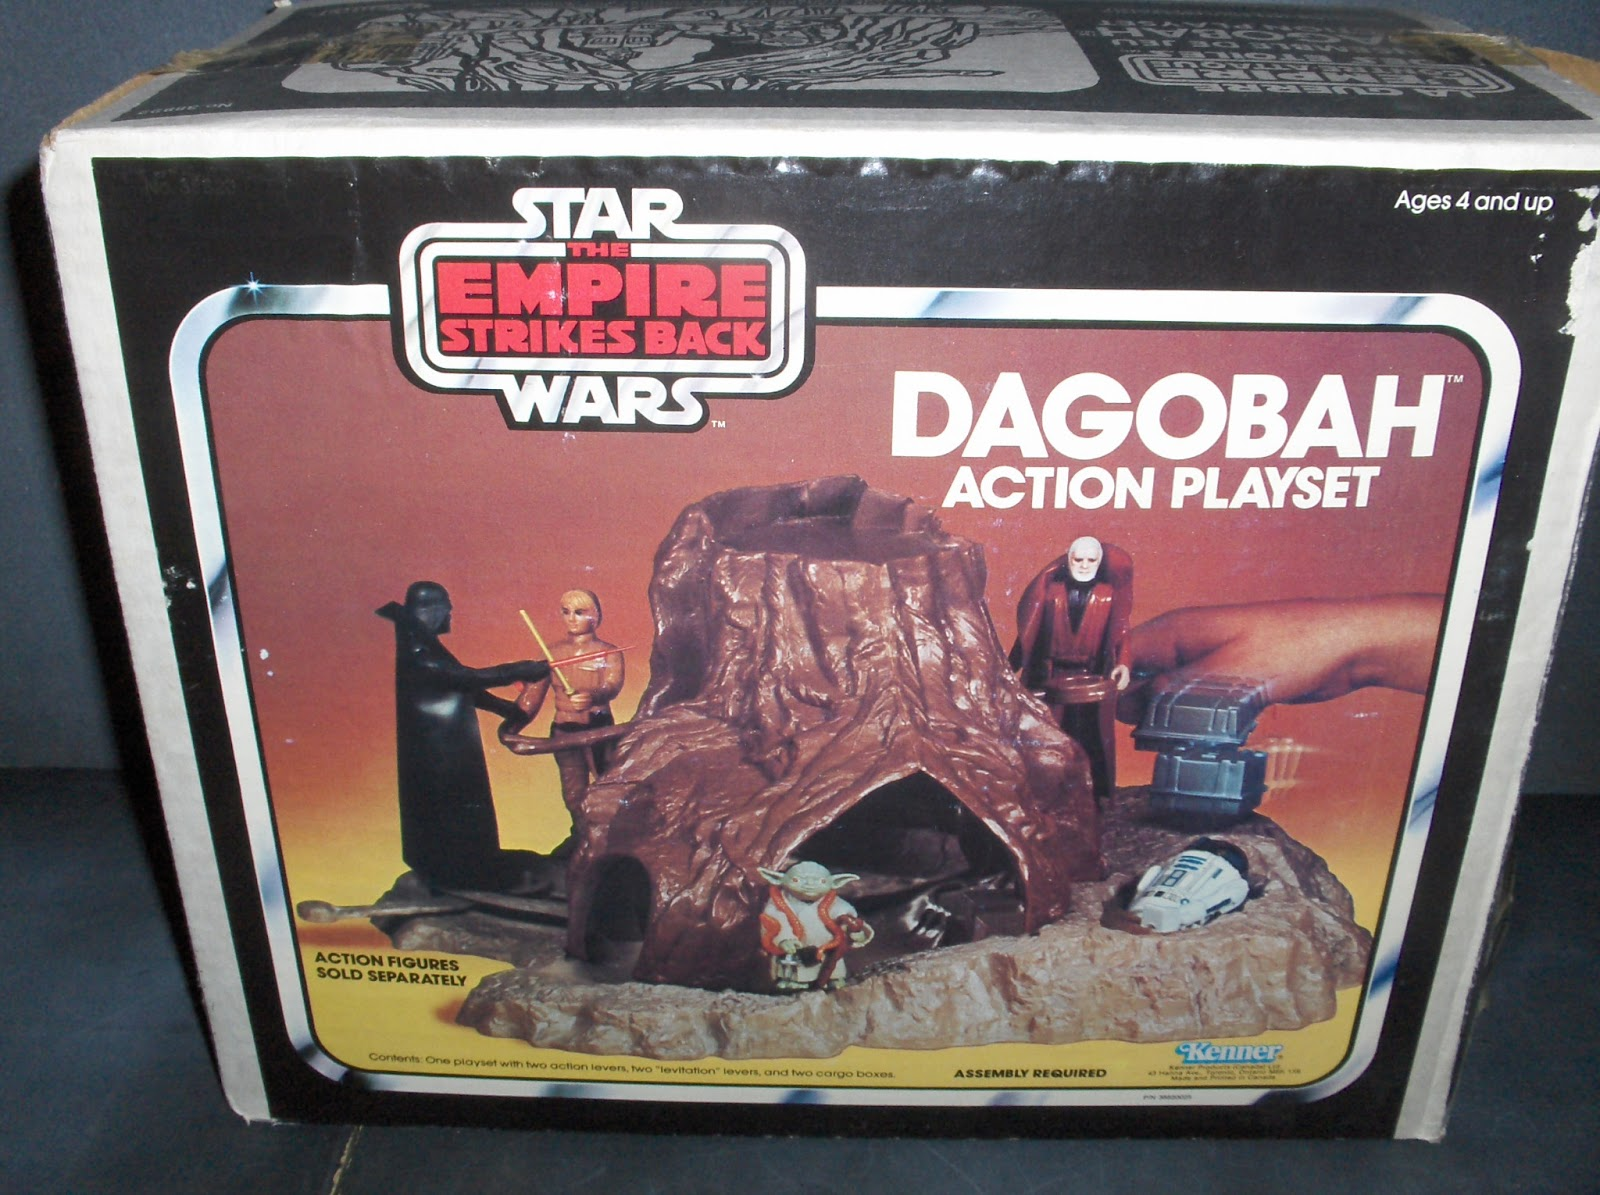 Star Wars Vintage Toys : Vintage kenner star wars toys dagobah action playset